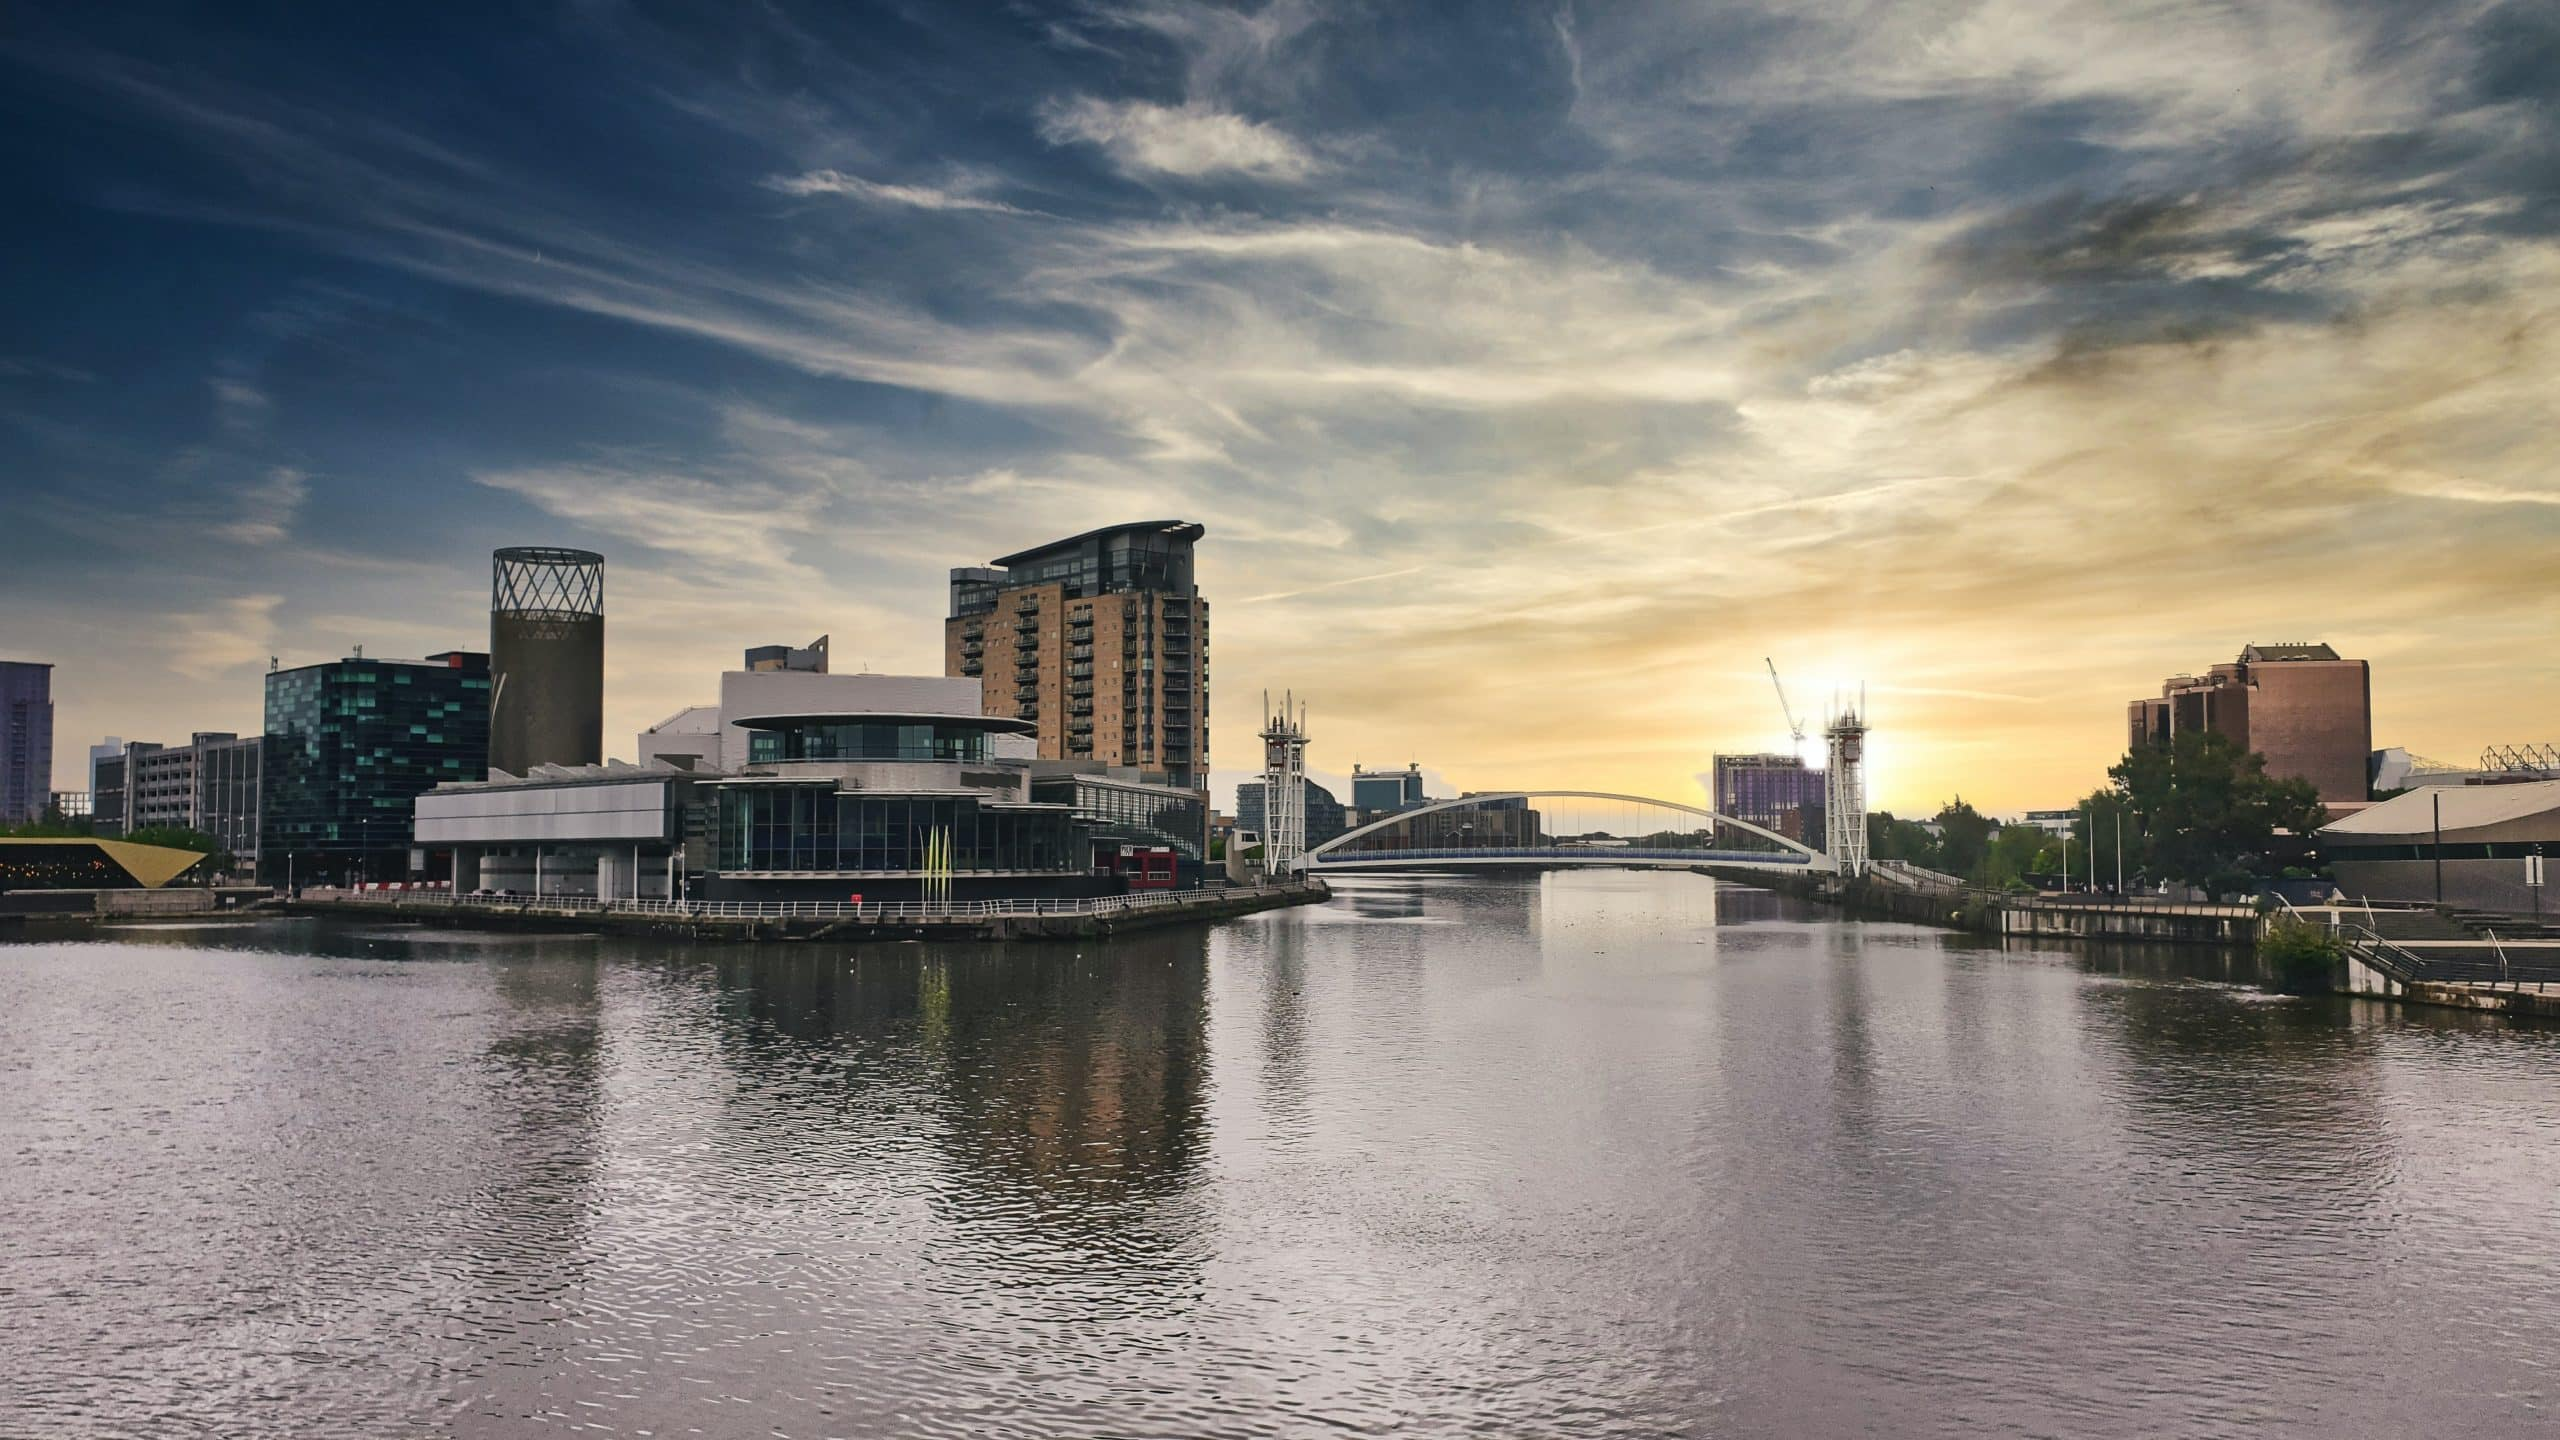 The Best Property Investment Areas In The UK 2021